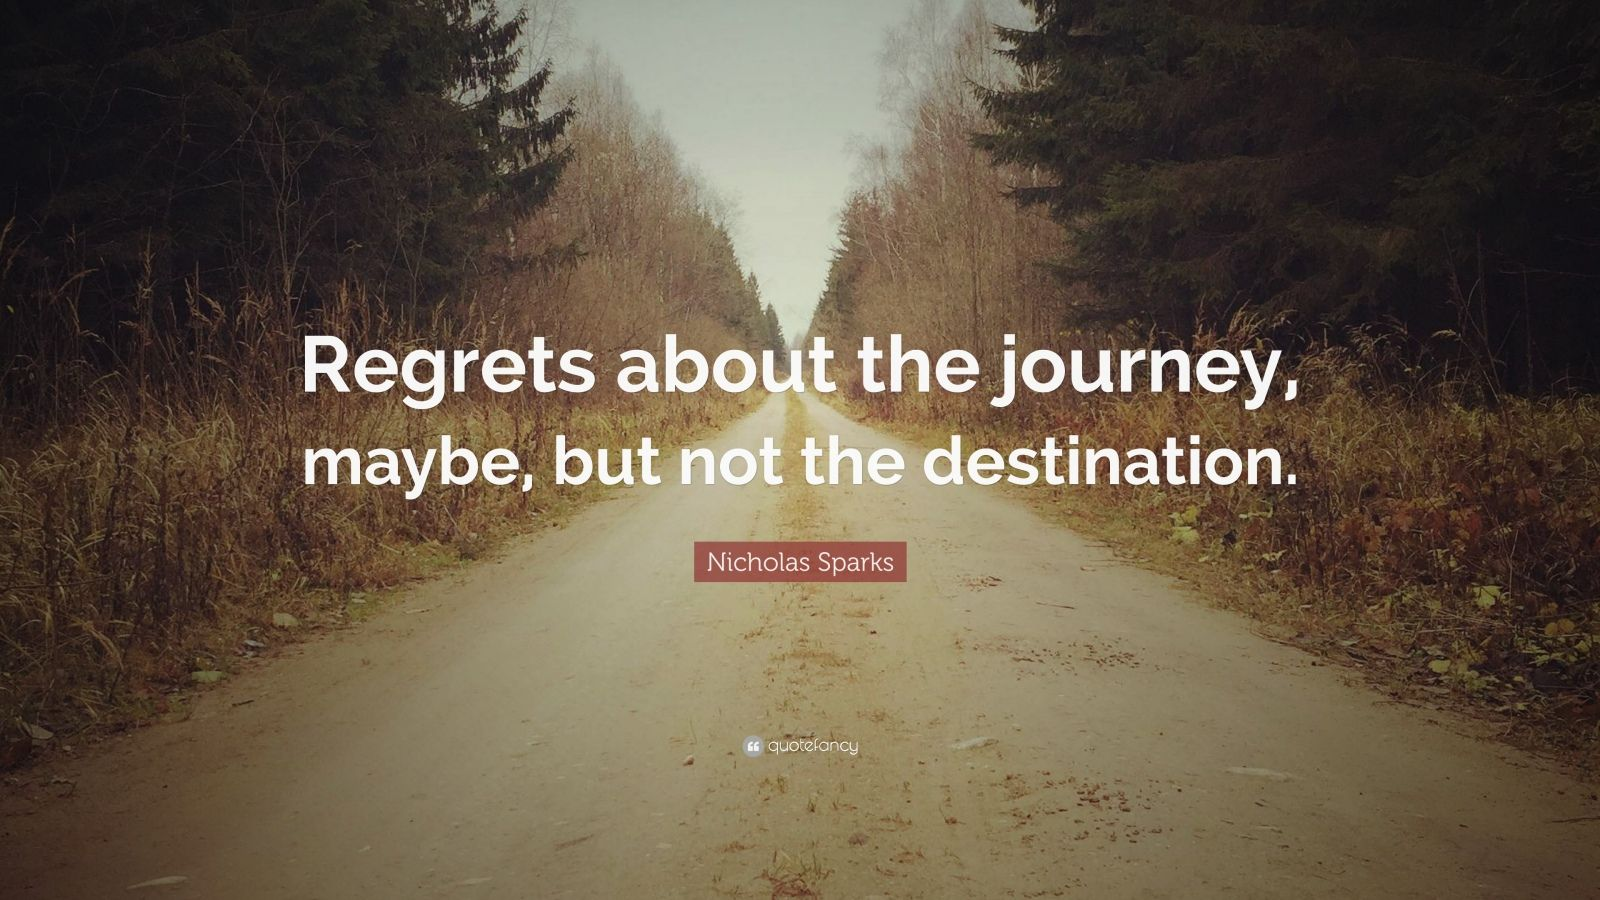 """Nicholas Sparks Quote: """"Regrets about the journey, maybe, but not the destination."""""""